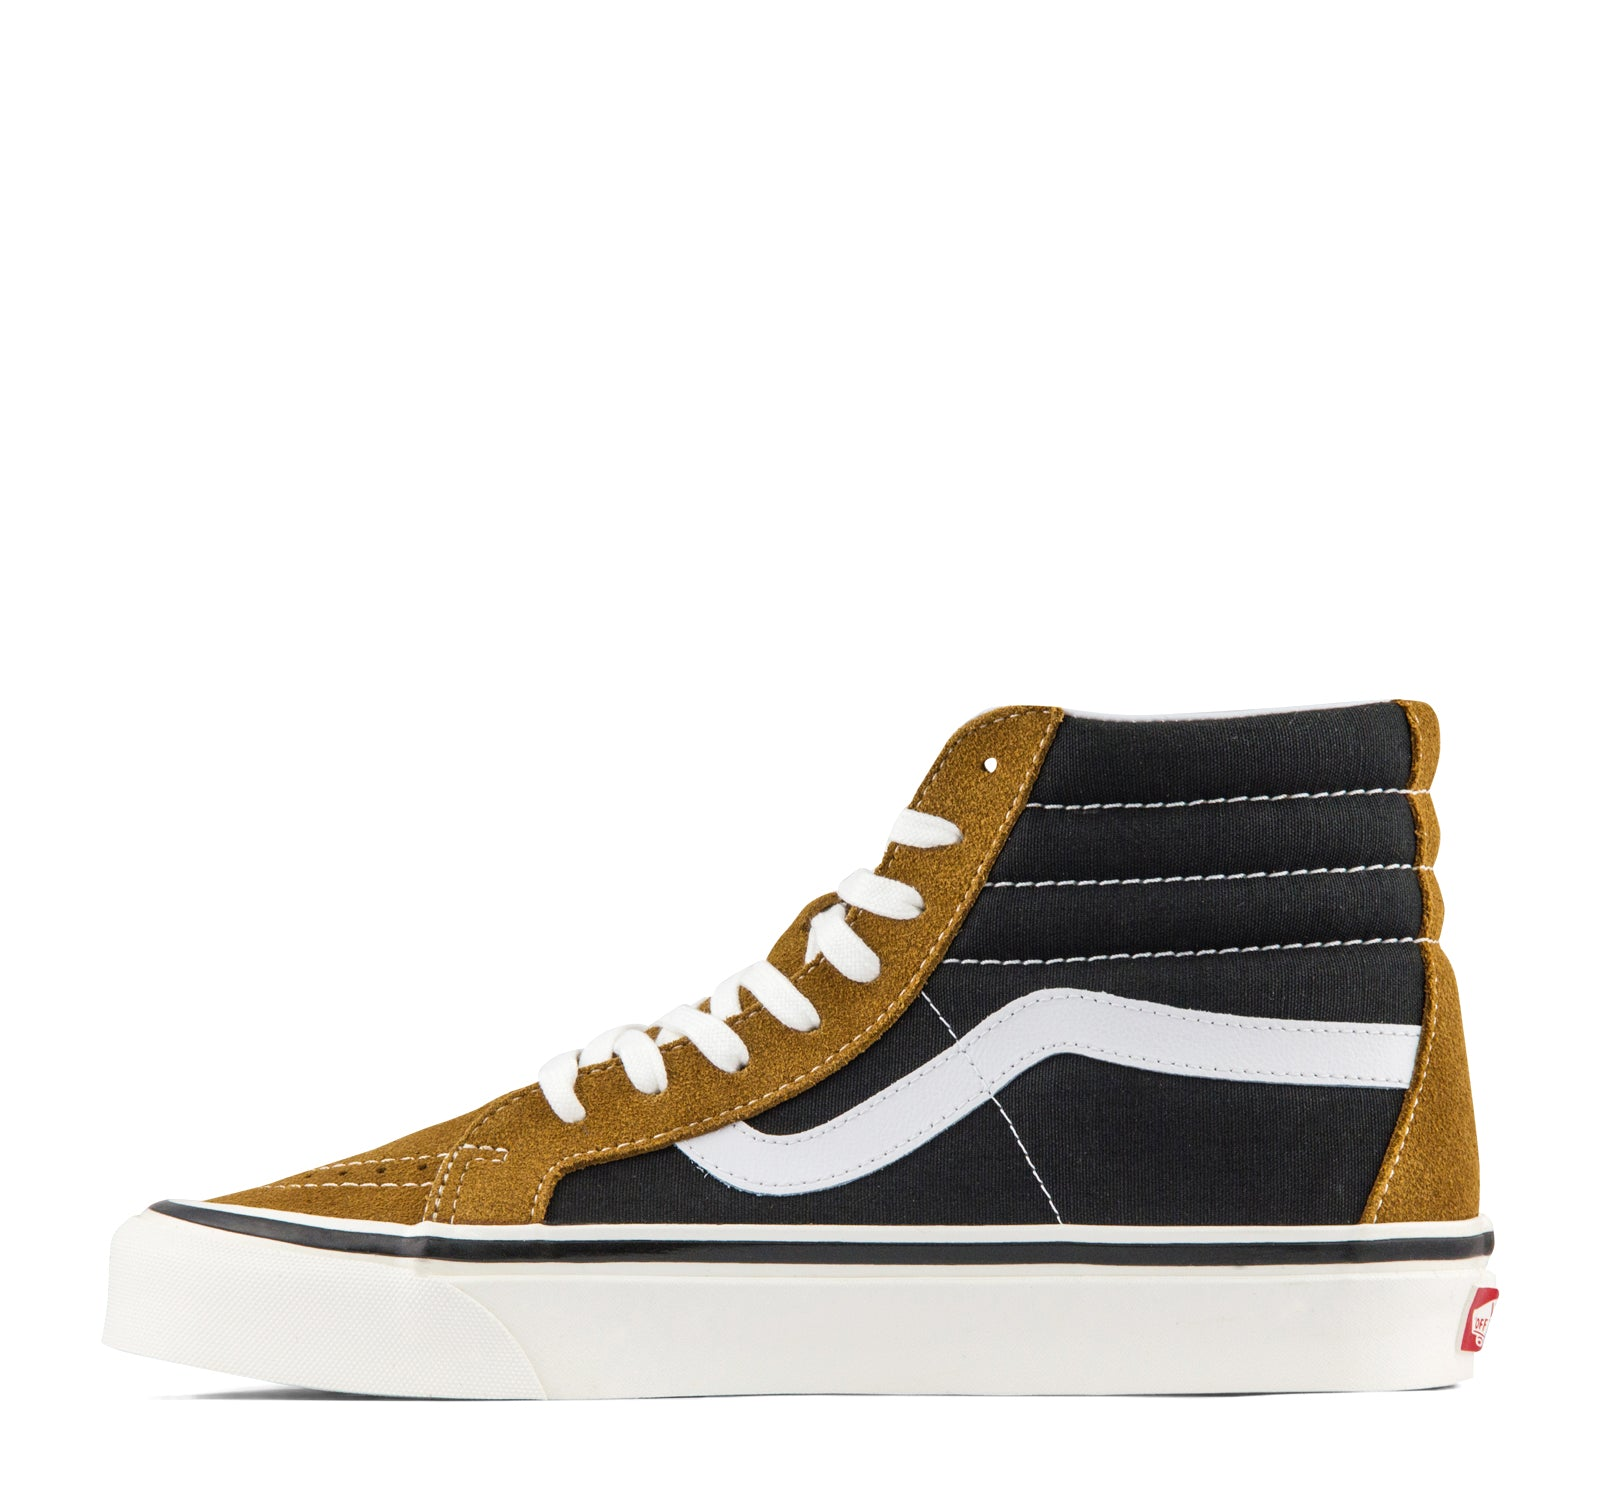 7a0e19cb6cd Vans Anaheim Factory Sk8-Hi 38 DX Men s Sneaker in OG Hart – On The EDGE